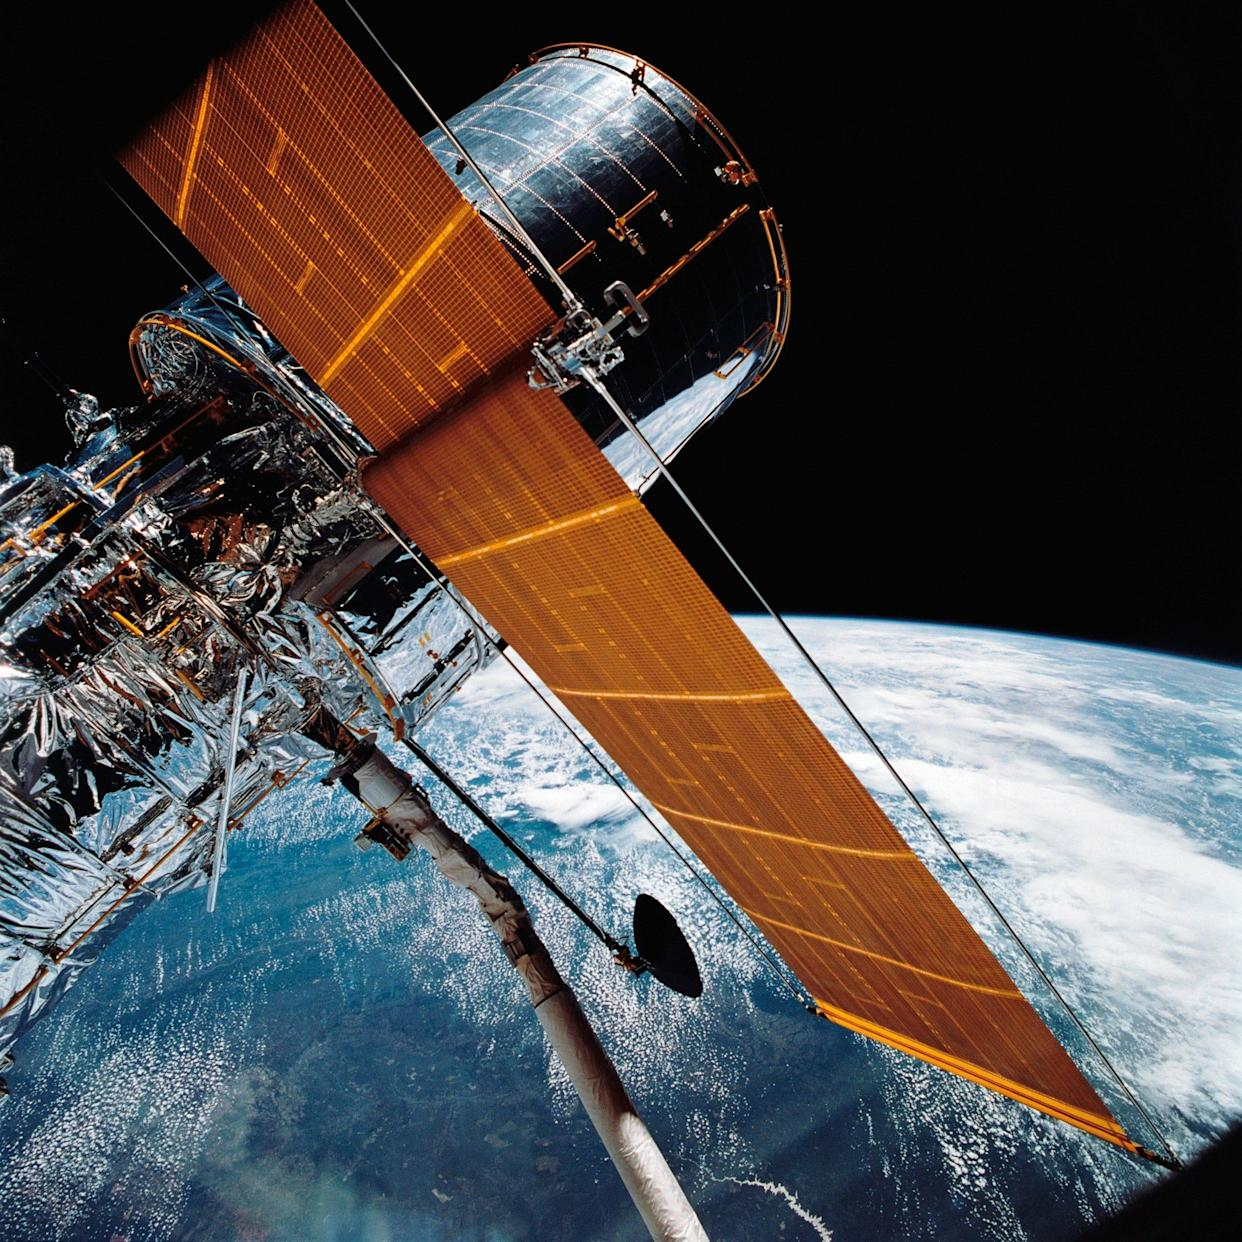 Trouble for Hubble: the space telescope has been working since 1990 - NASA